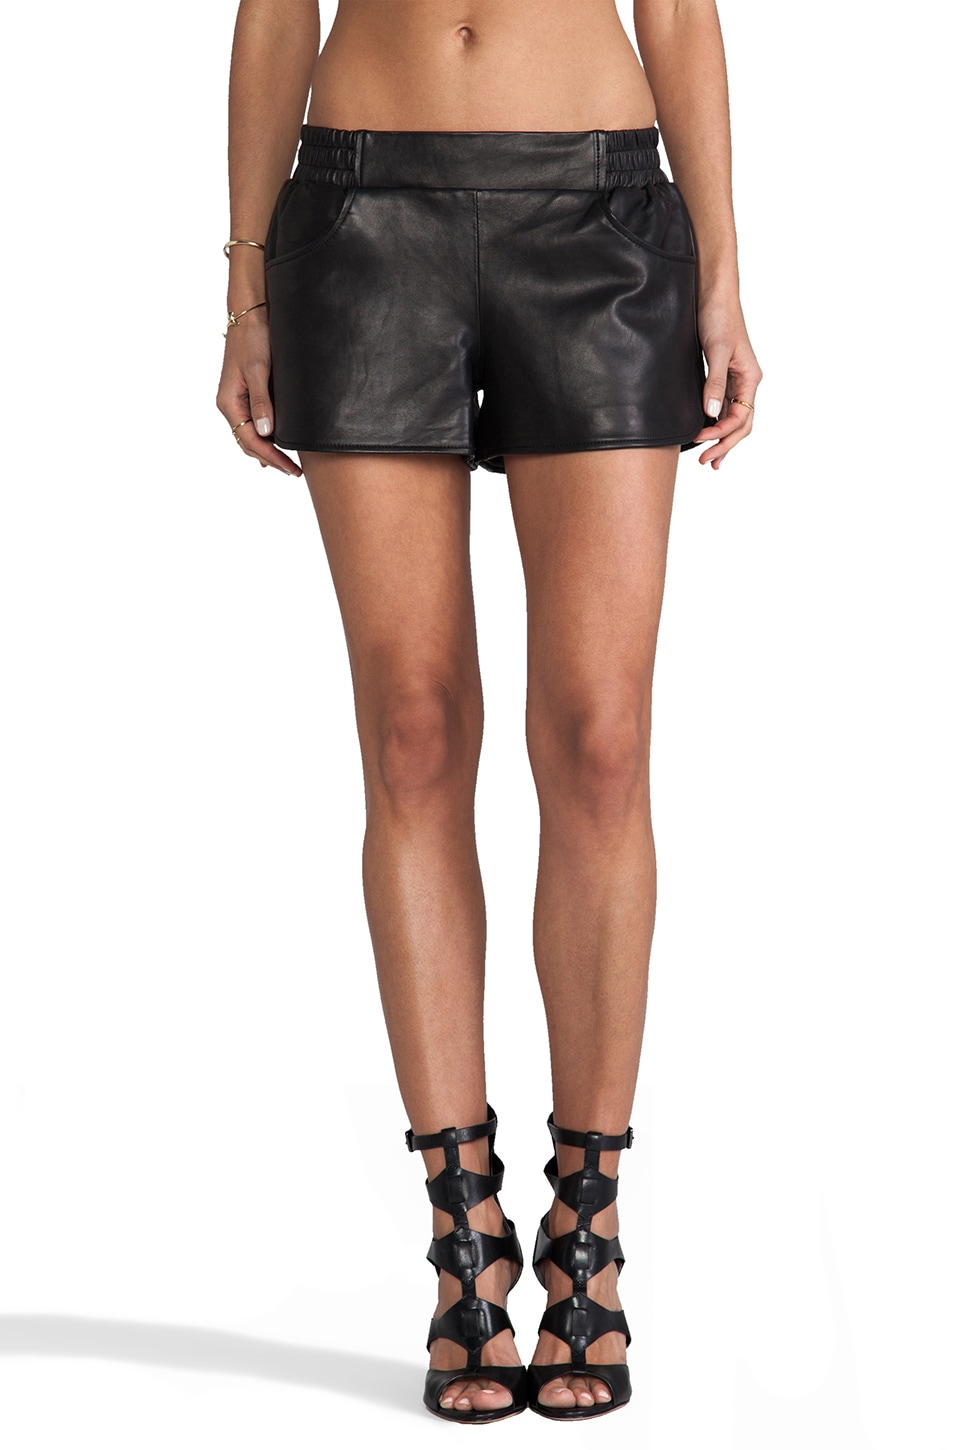 Twelfth Street By Cynthia Vincent Open Air Leather Gym Short In Black